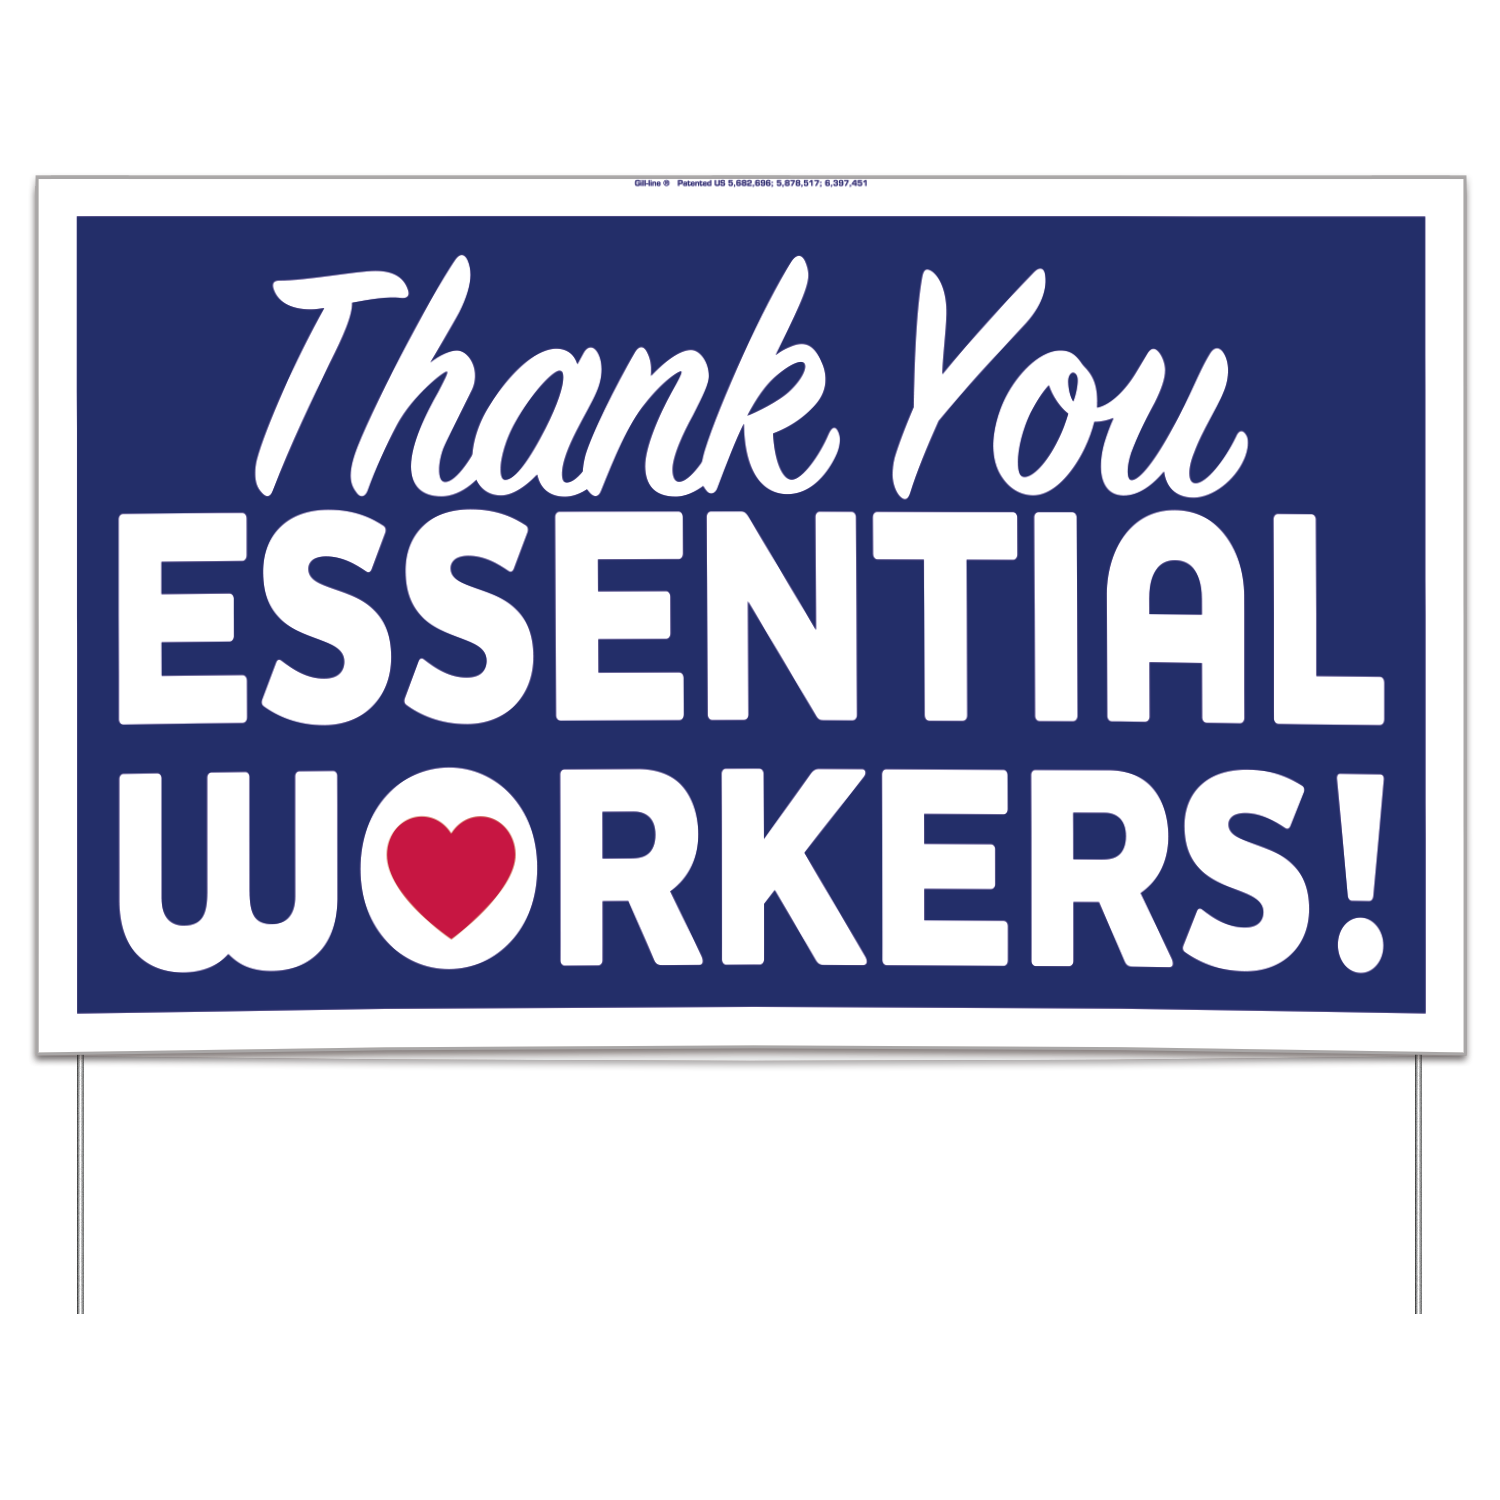 https://www.sswprinting.com/images/products_gallery_images/594201_Thank-You-Essential-Workers_hi-res54.png